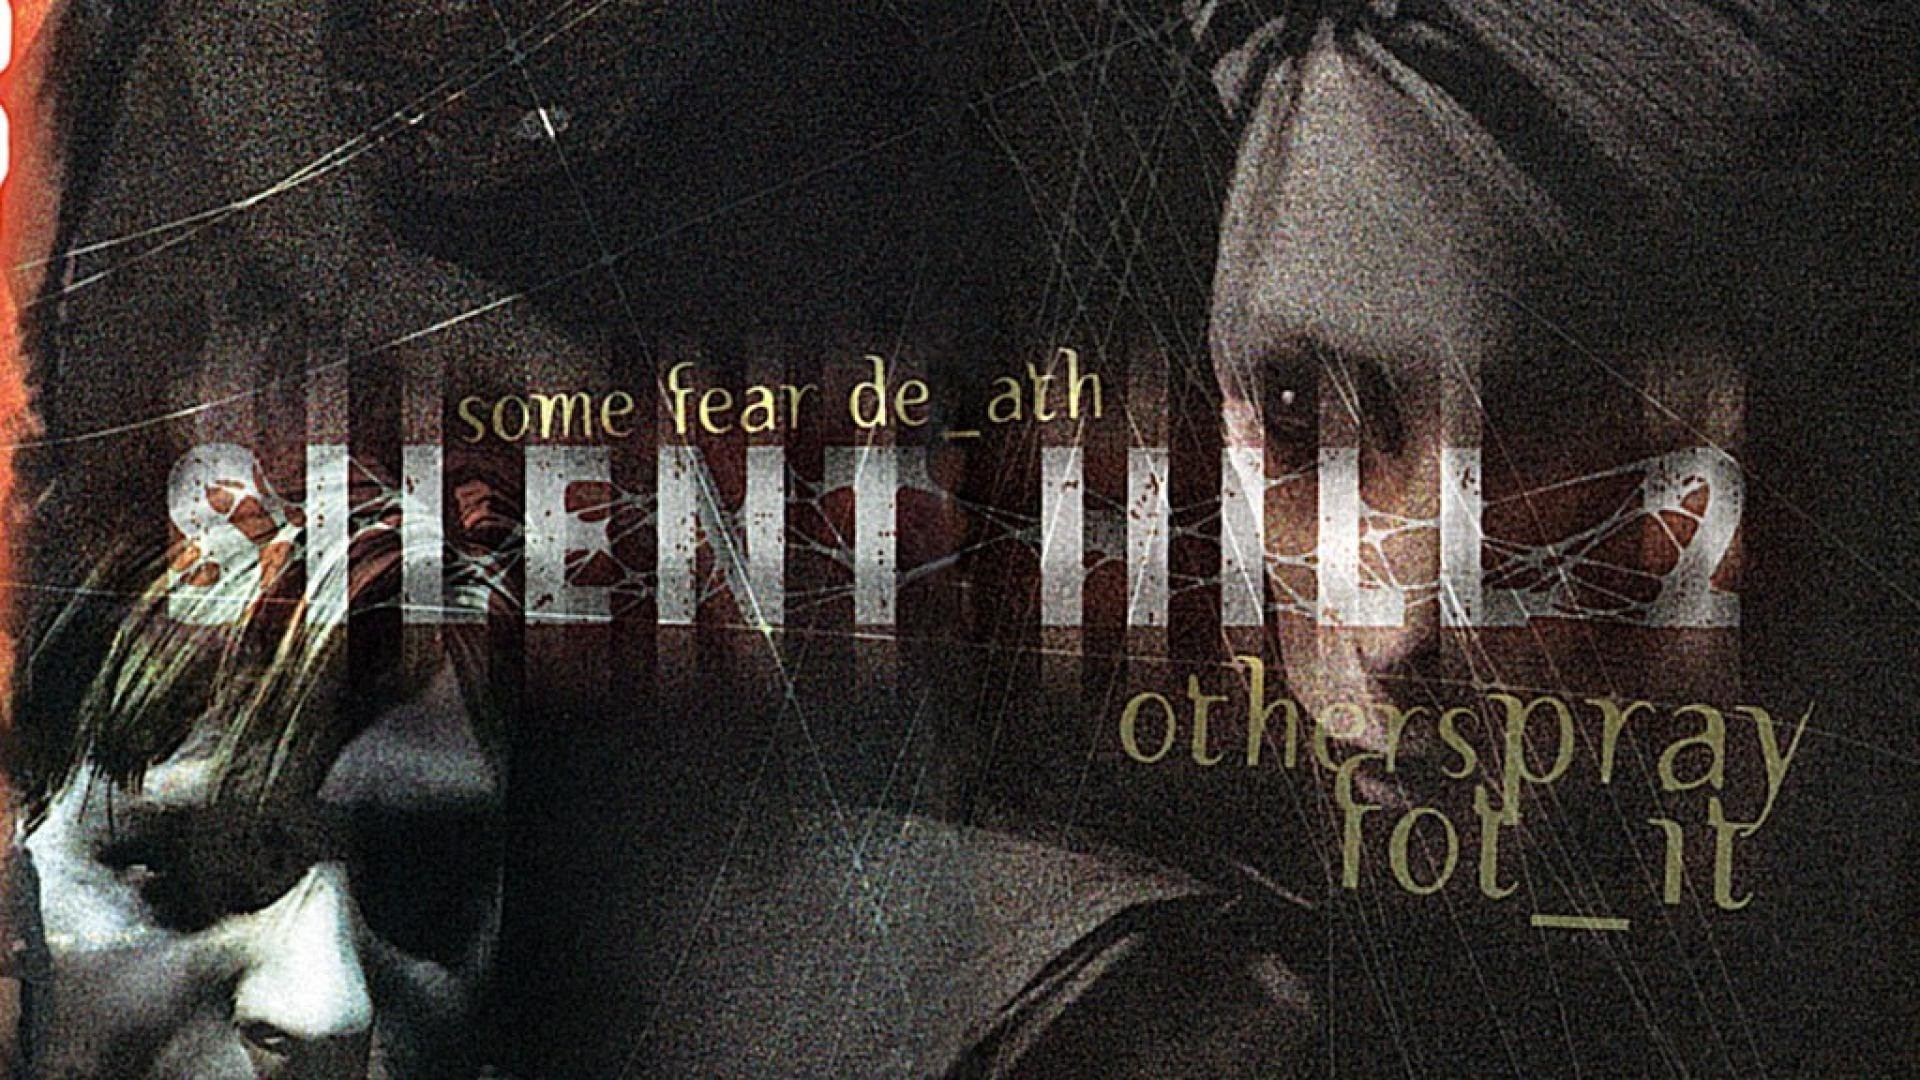 Silent Hill Wallpaper 4k Posted By Samantha Simpson